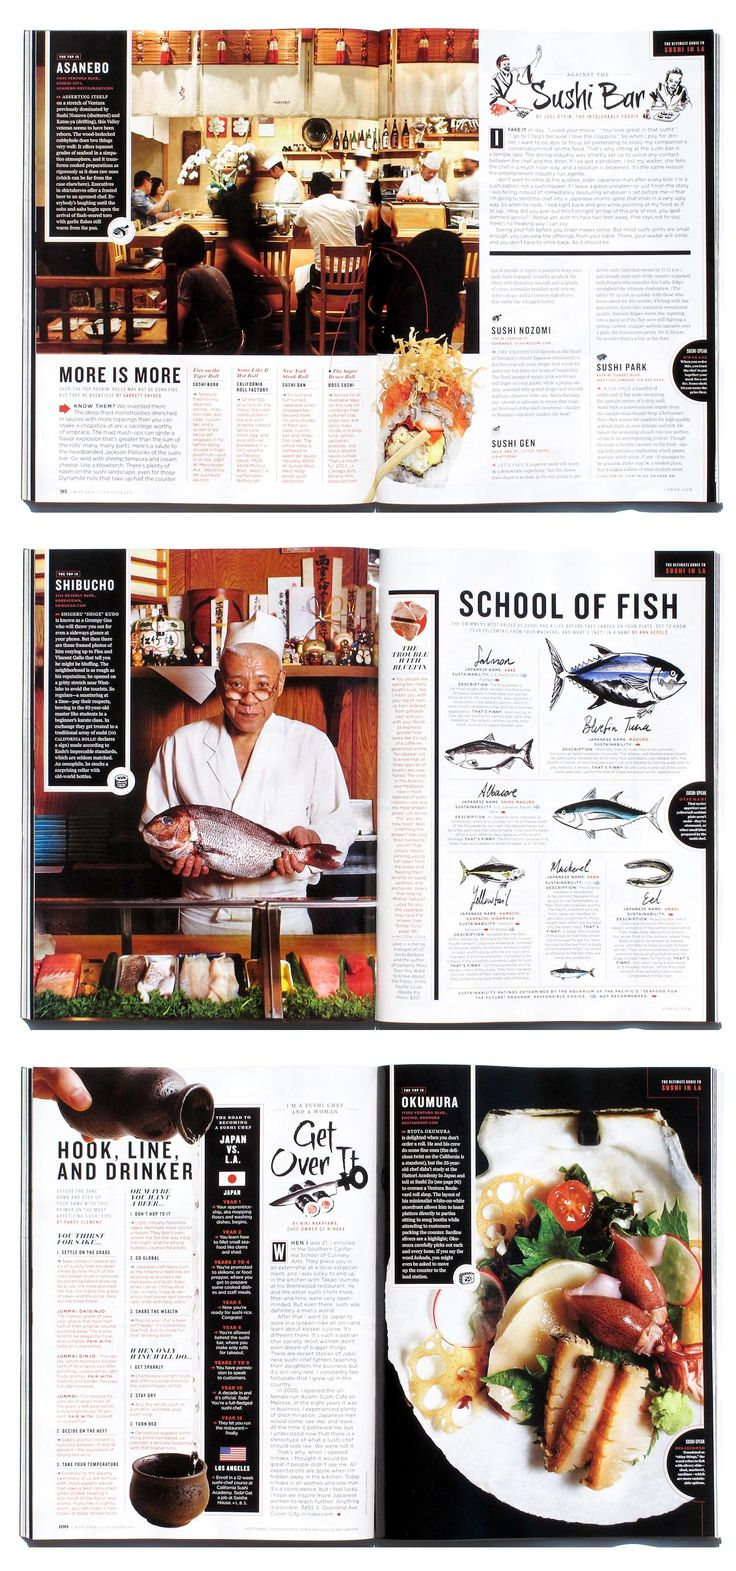 The photos are excellent and the graphics works well throughout the spreads. I…